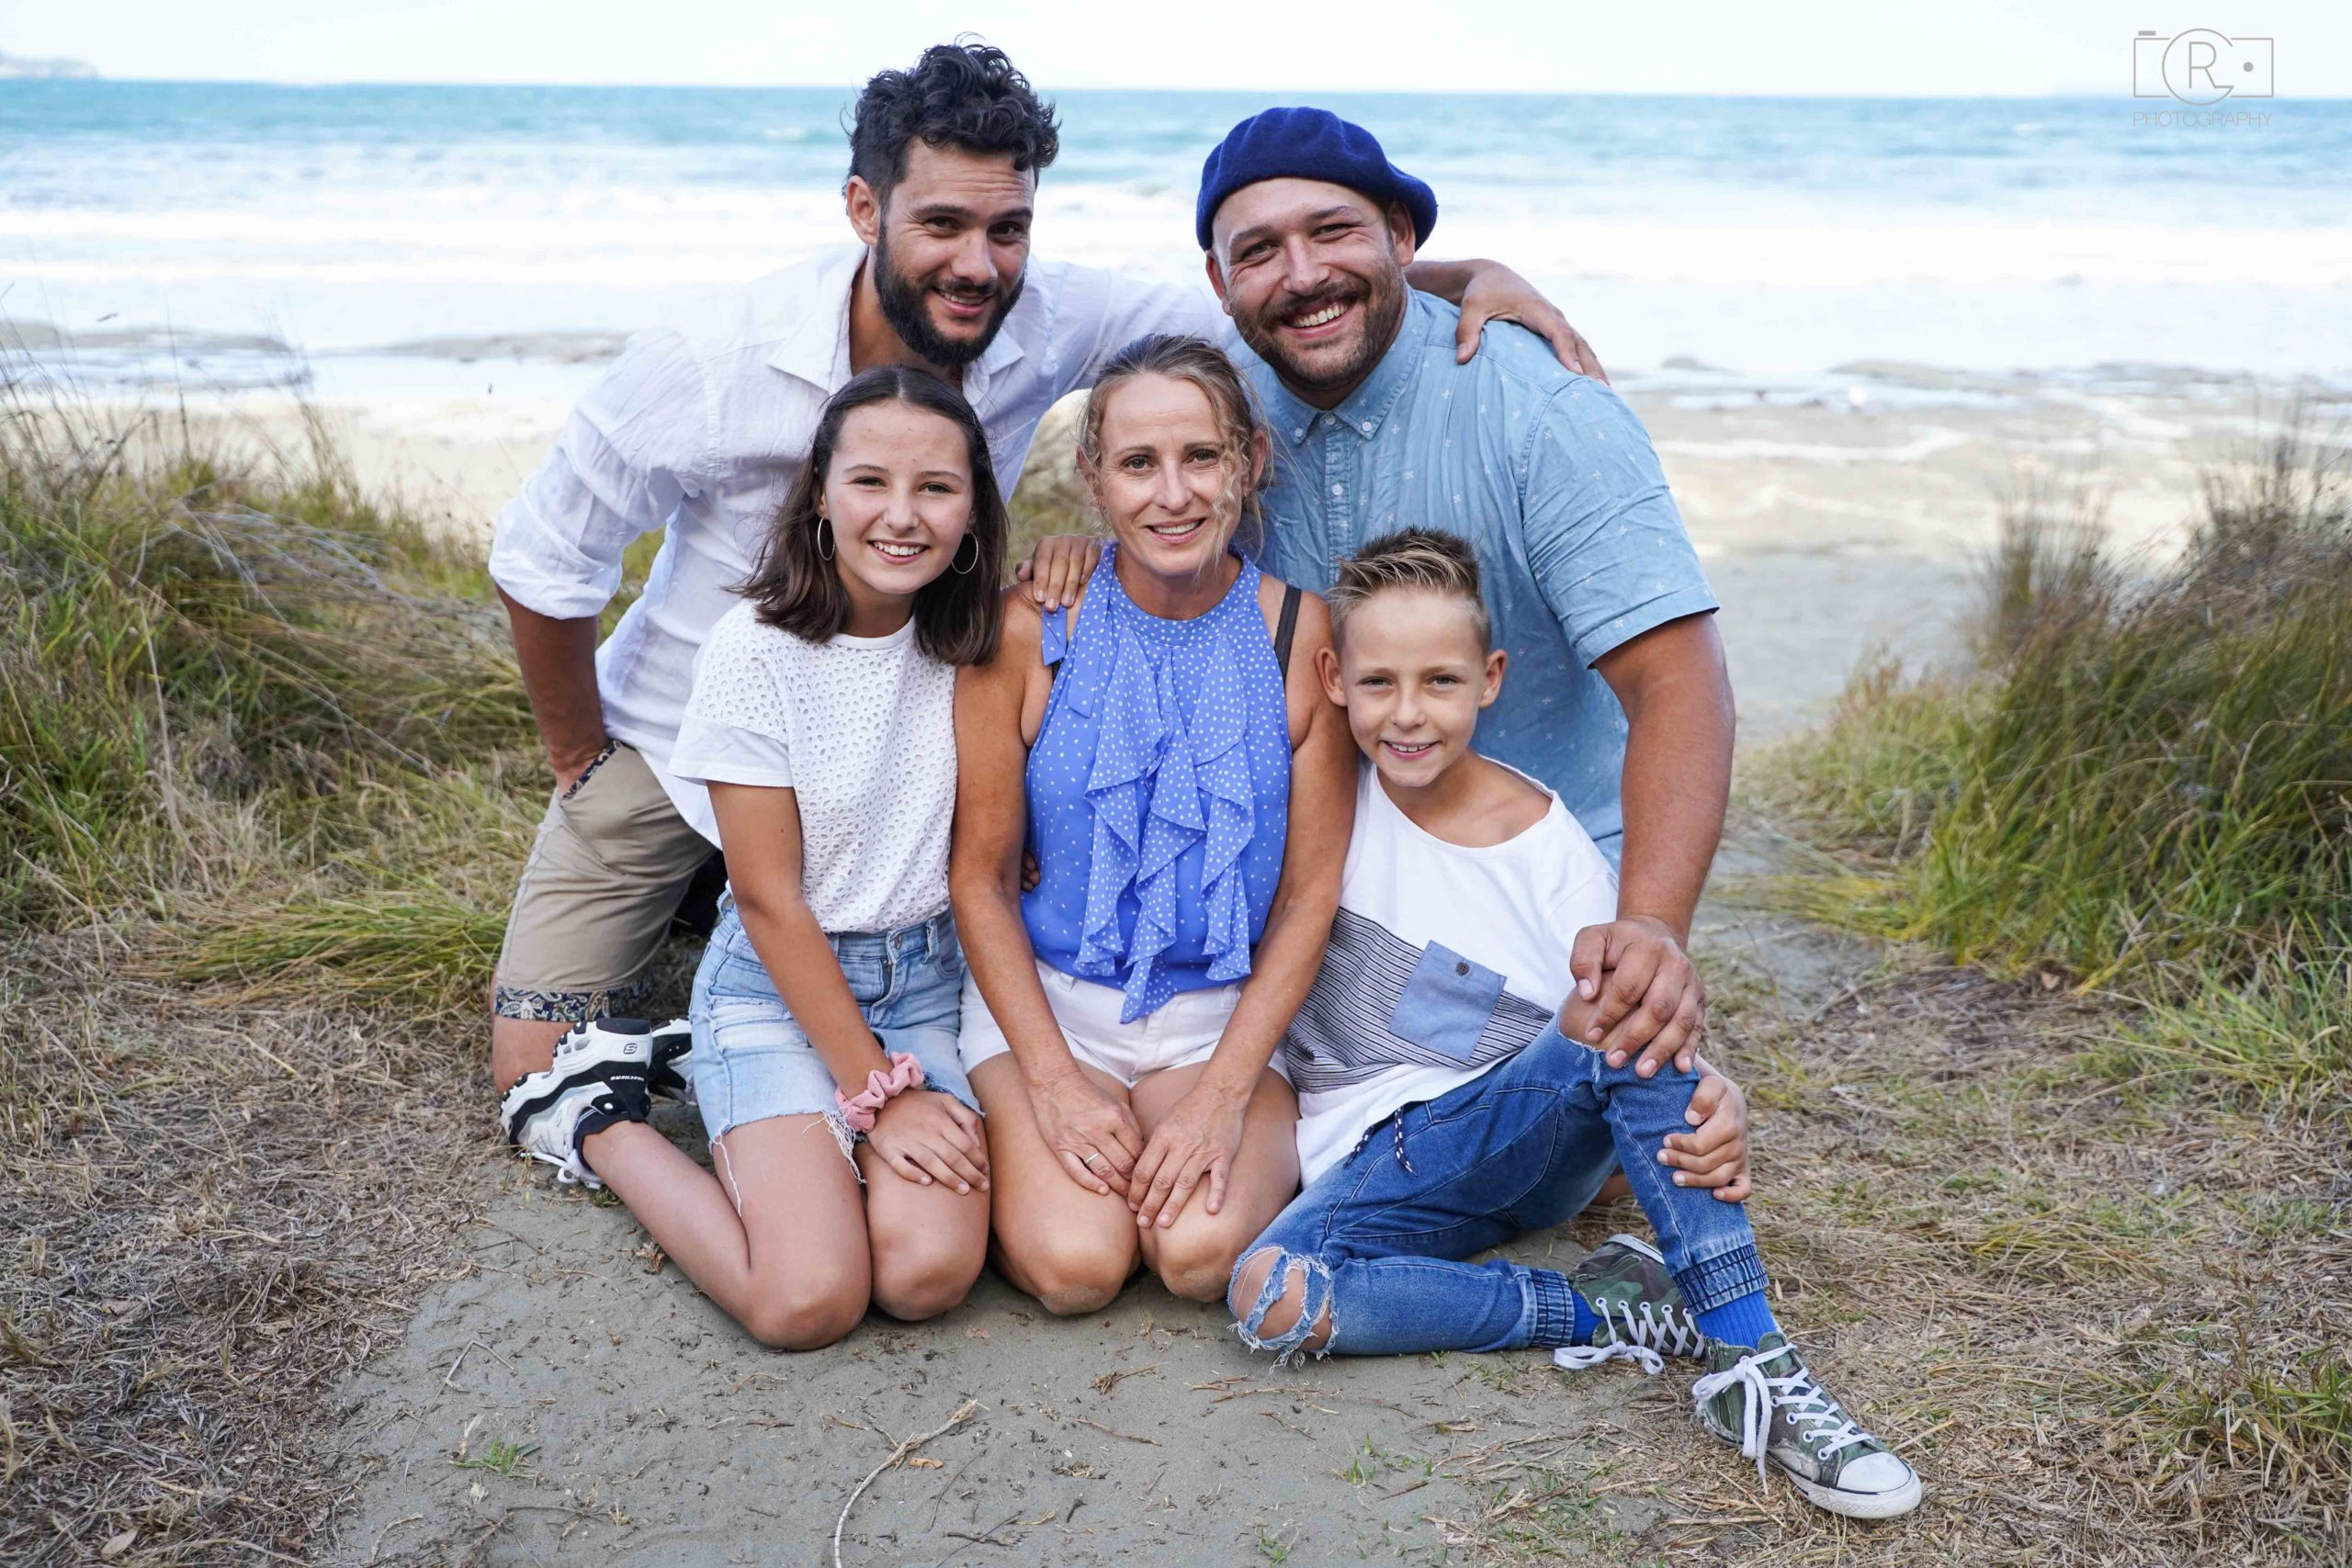 Family_Portraits_6_Richa_Gandhi_Photography_Auckland